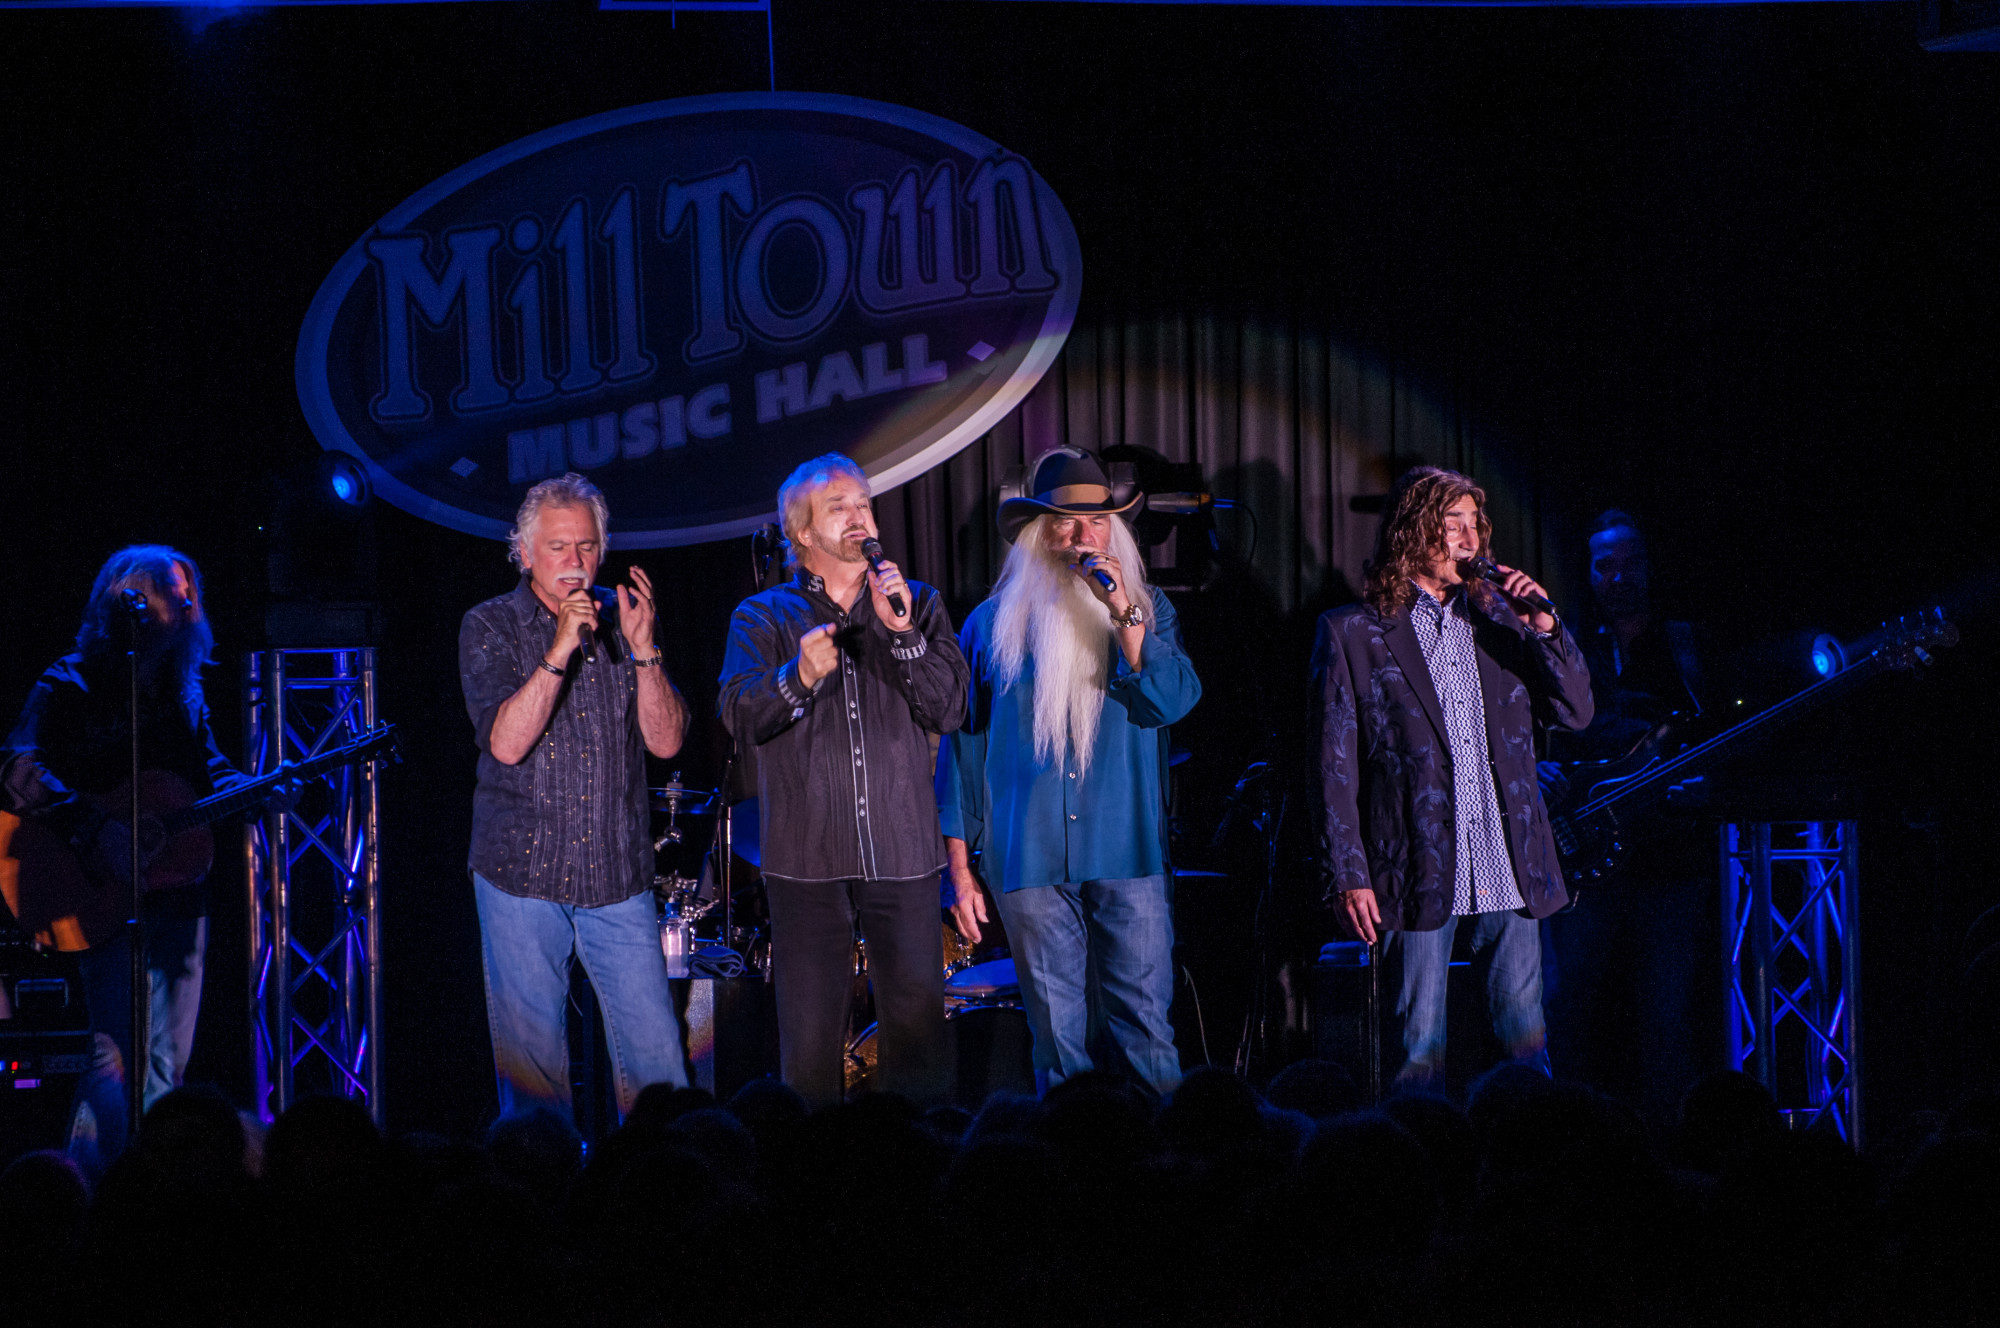 The Oak Ridge Boys at Mill Town Music Hall in Bremen, Georgia